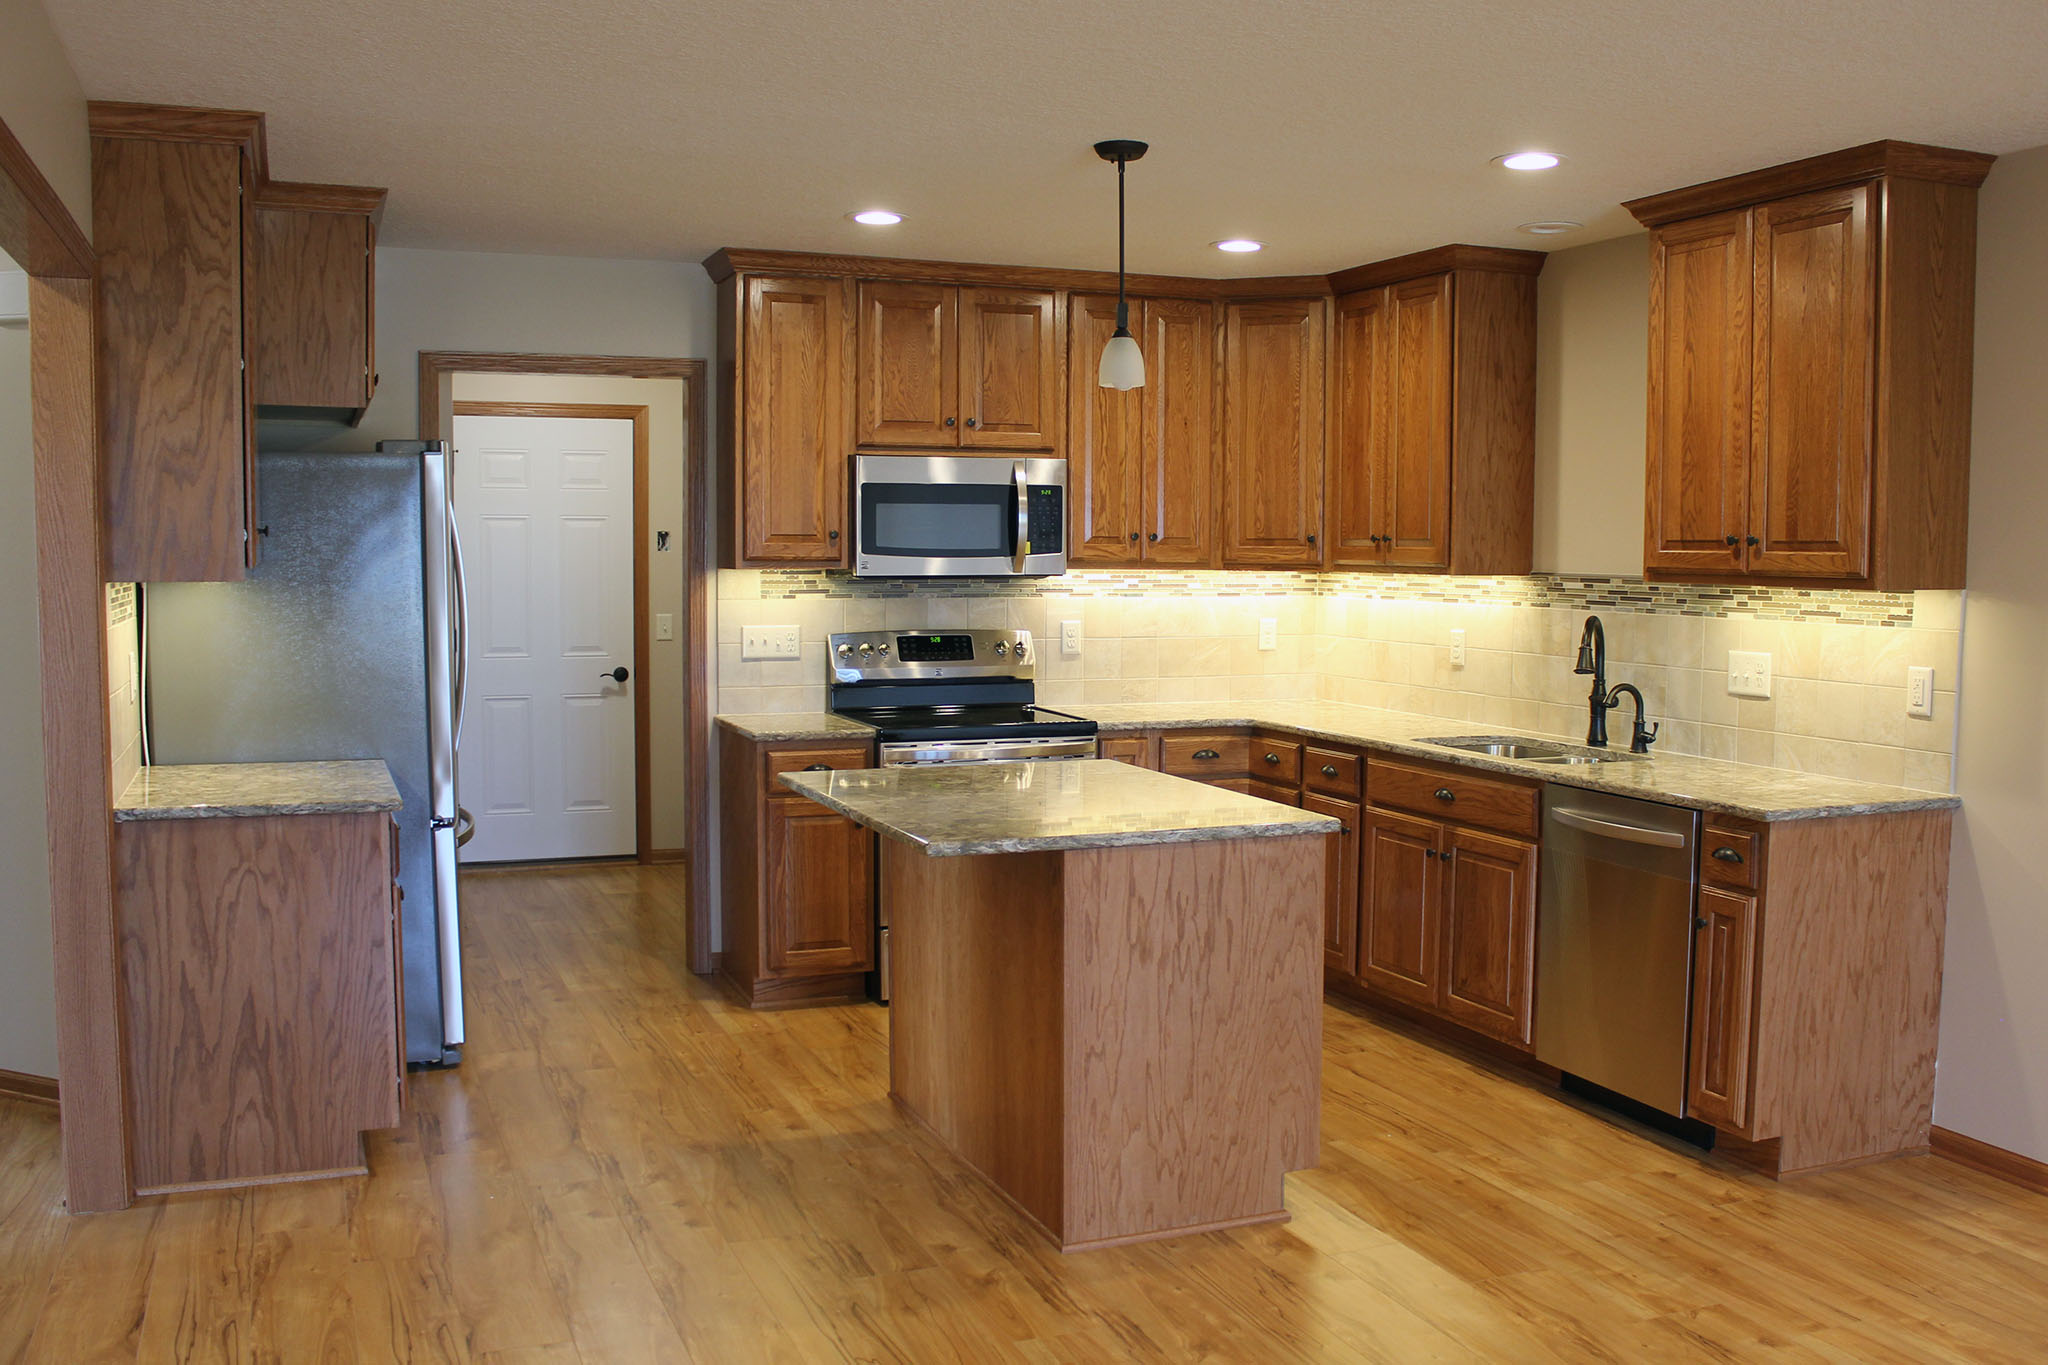 Kitchen with wood cabinets and stainless appliances